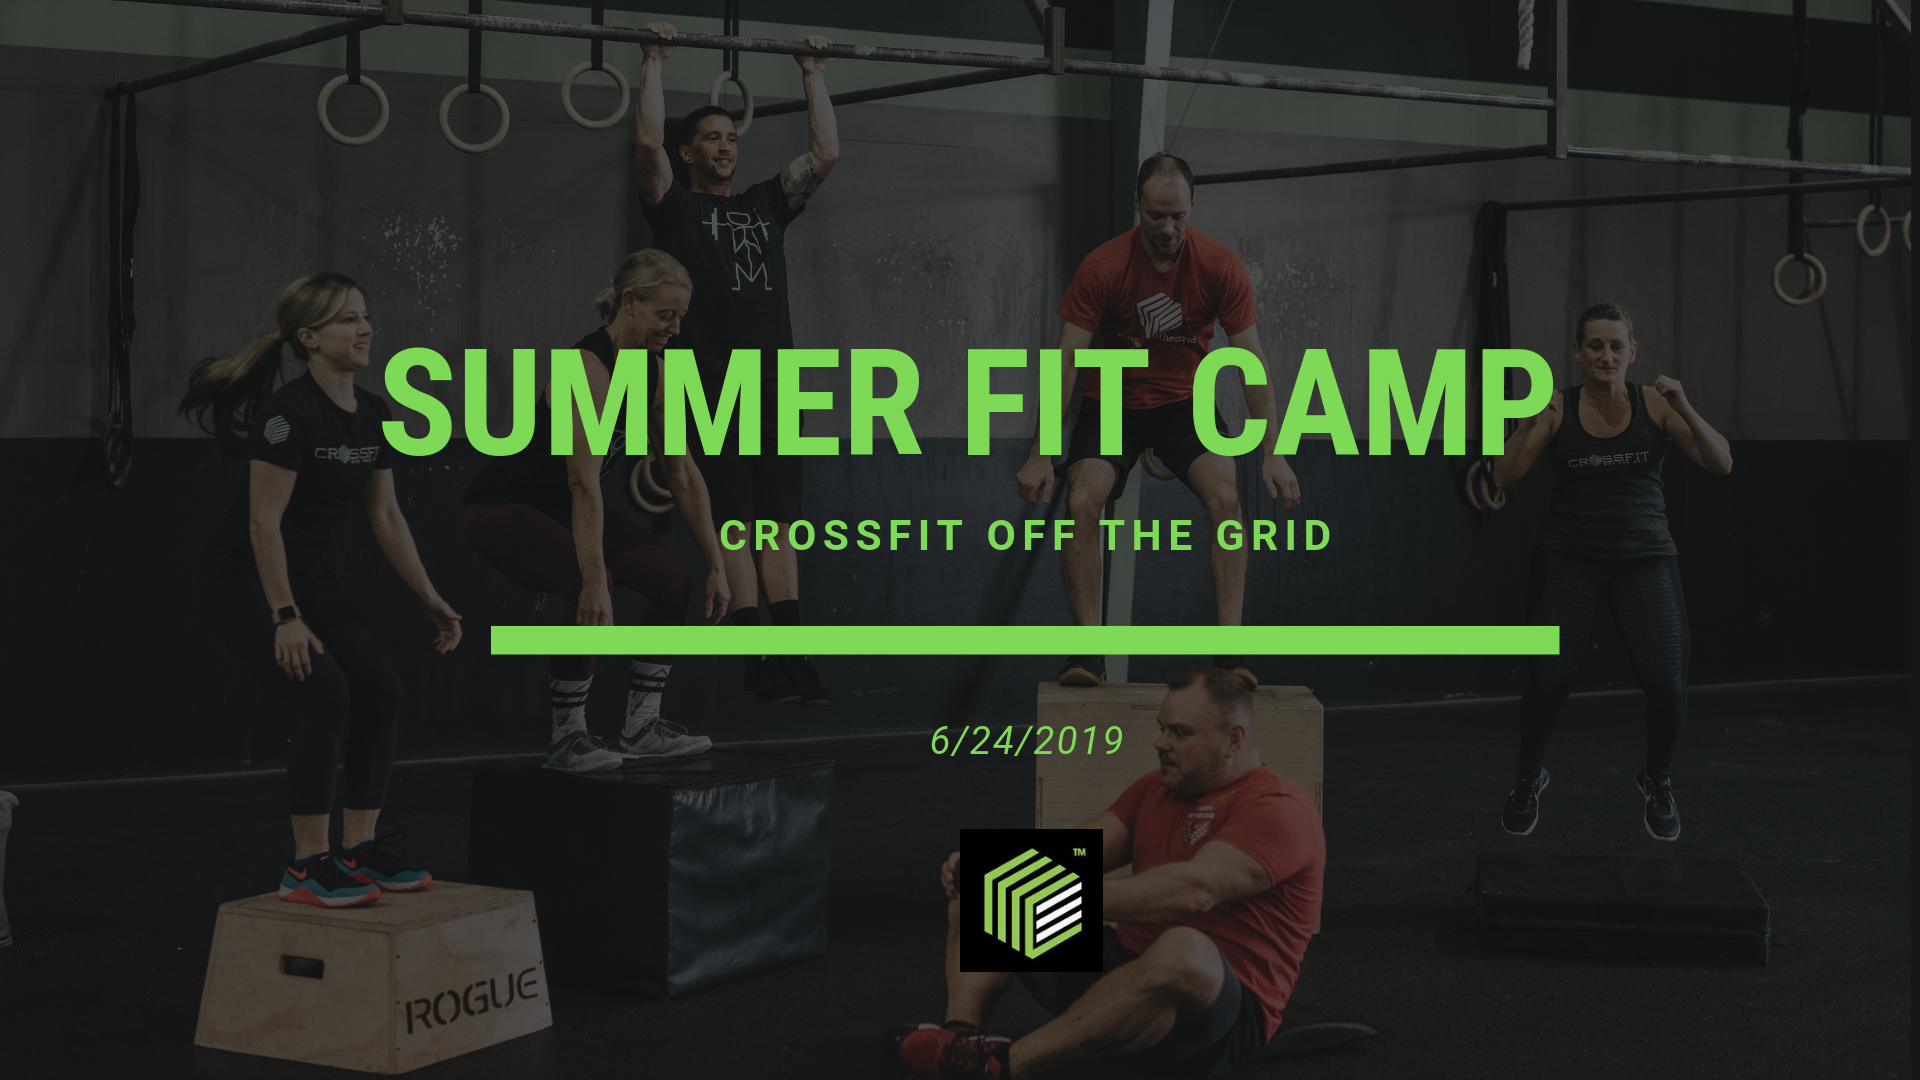 Summer Fit Camp at CrossFit Off the Grid!